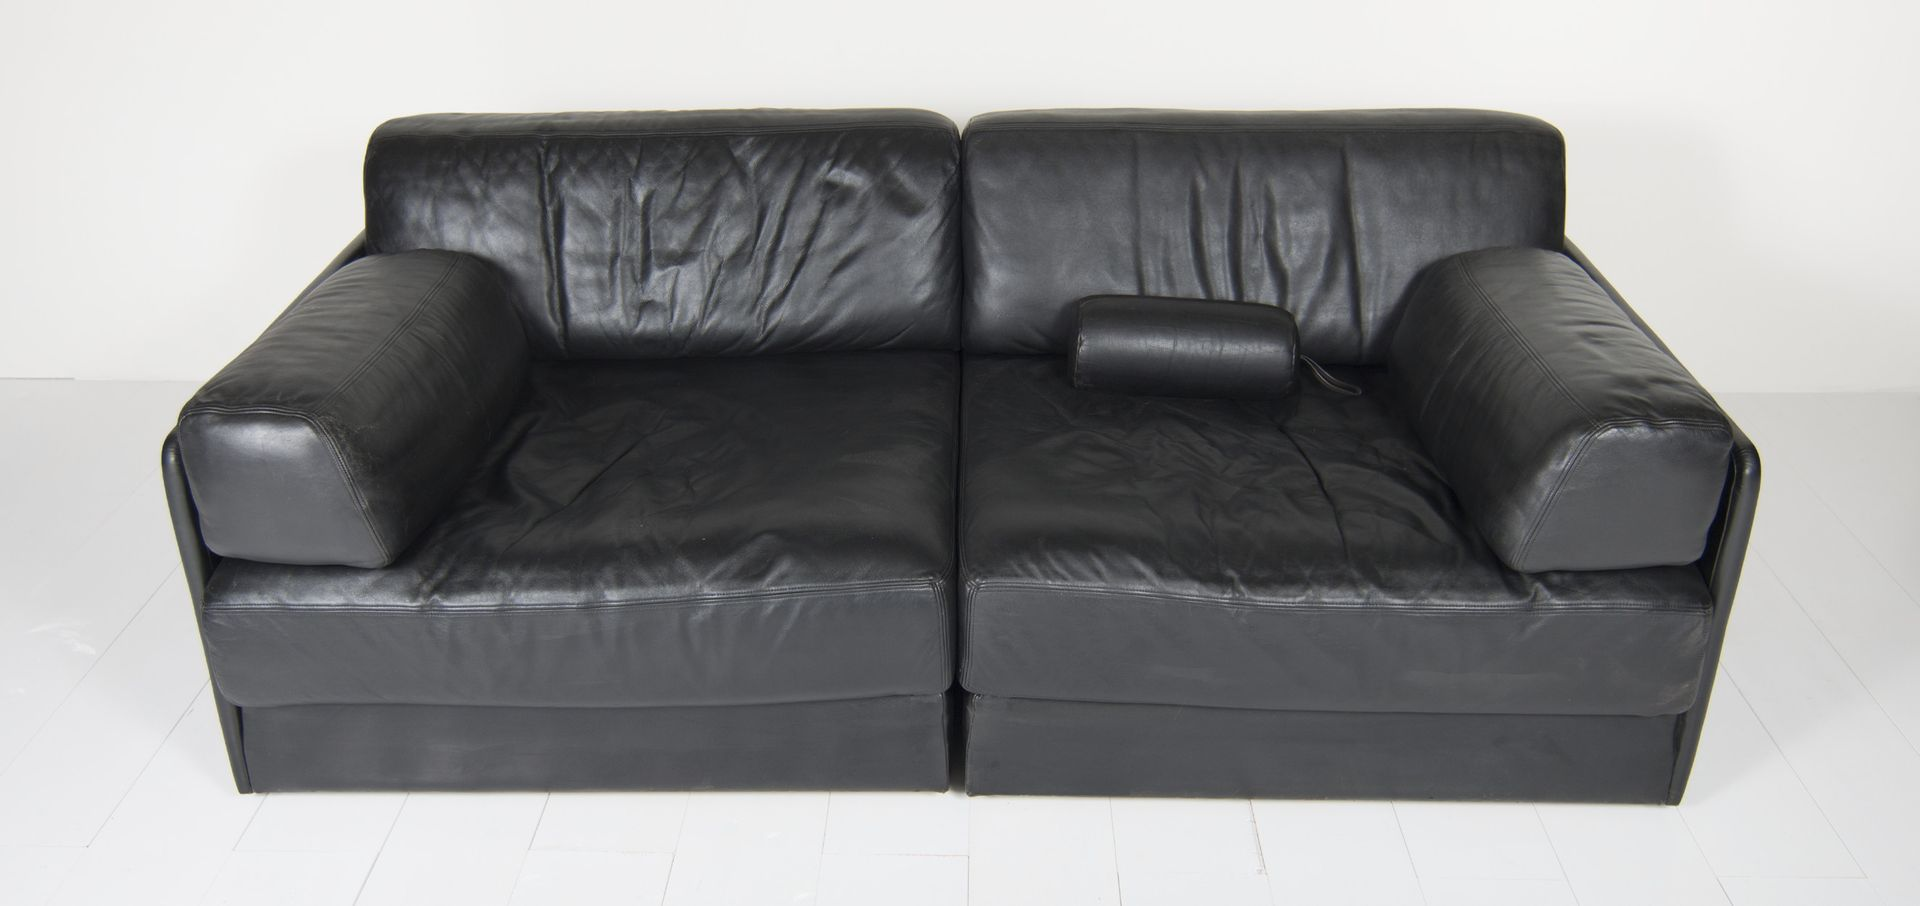 model ds 76 daybed from de sede 1970s for sale at pamono. Black Bedroom Furniture Sets. Home Design Ideas